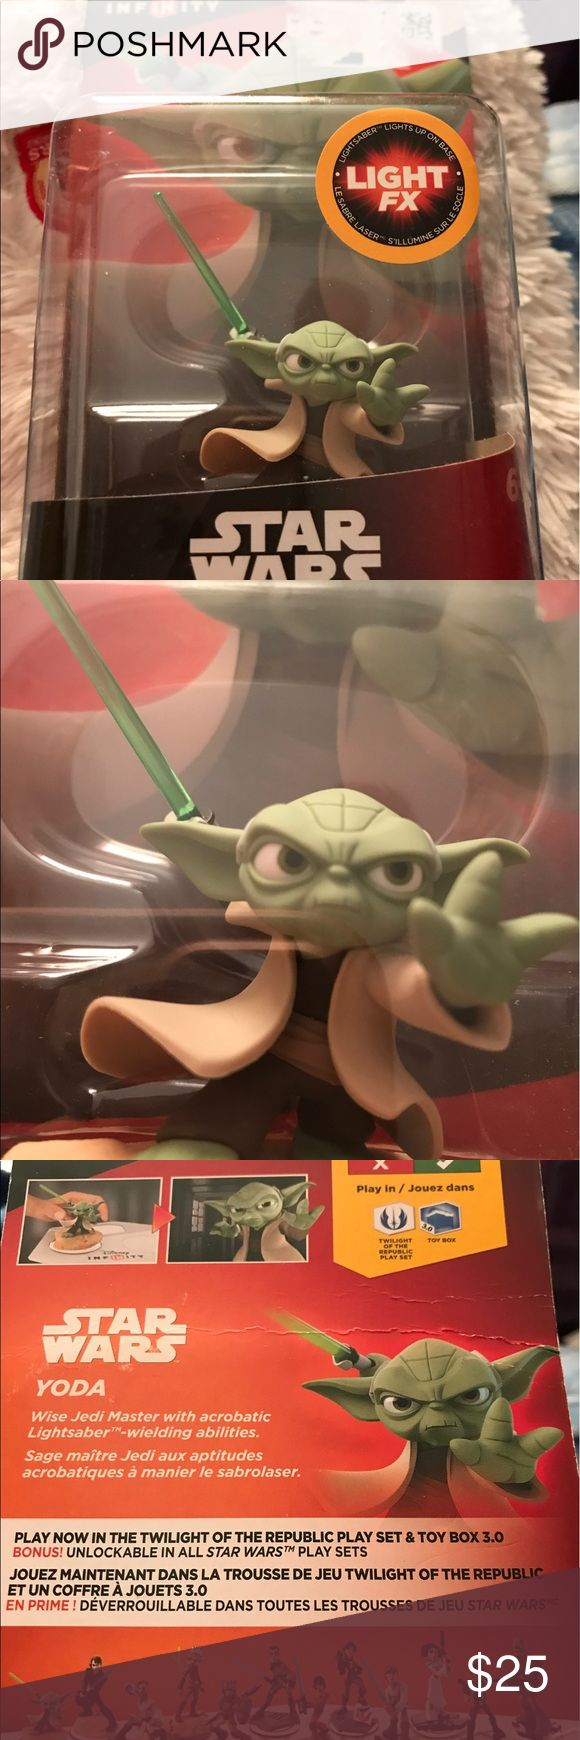 Star wars Yoda Disney infinity 3.0 mini figure This is a new in the box Yoda mini figure and power disc for Disney infinity games addition 3.0. This is a light FX edition that the light saber actually lights up when placed on the base during the game. 3.0 edition is not for the 2.0 only  3.0. For ages 6+. Great for display if you don't have the game. Disney Other